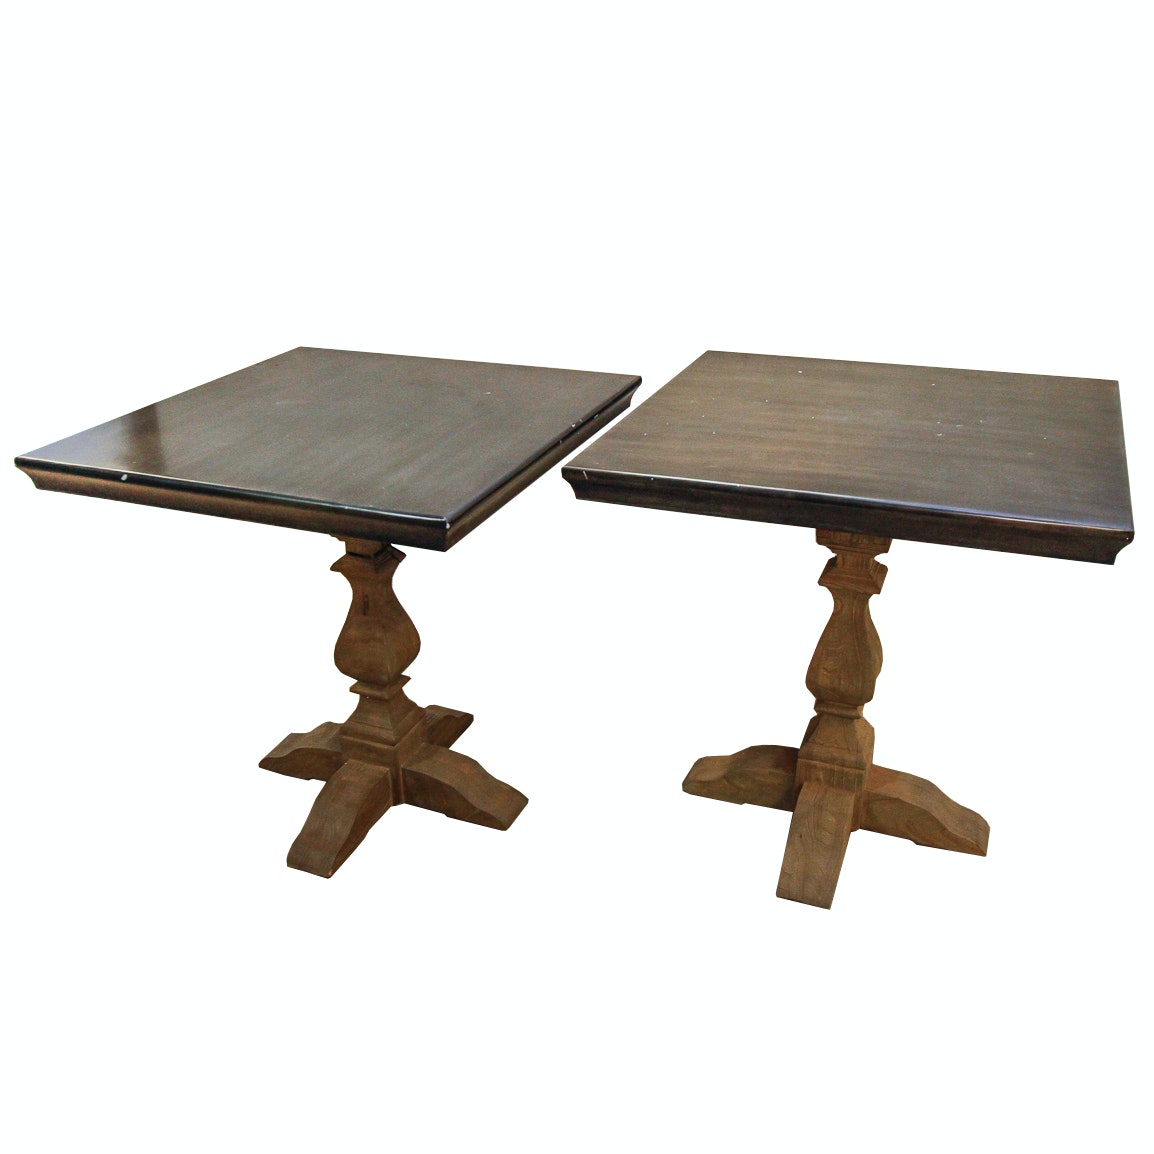 Pair of Café Tables